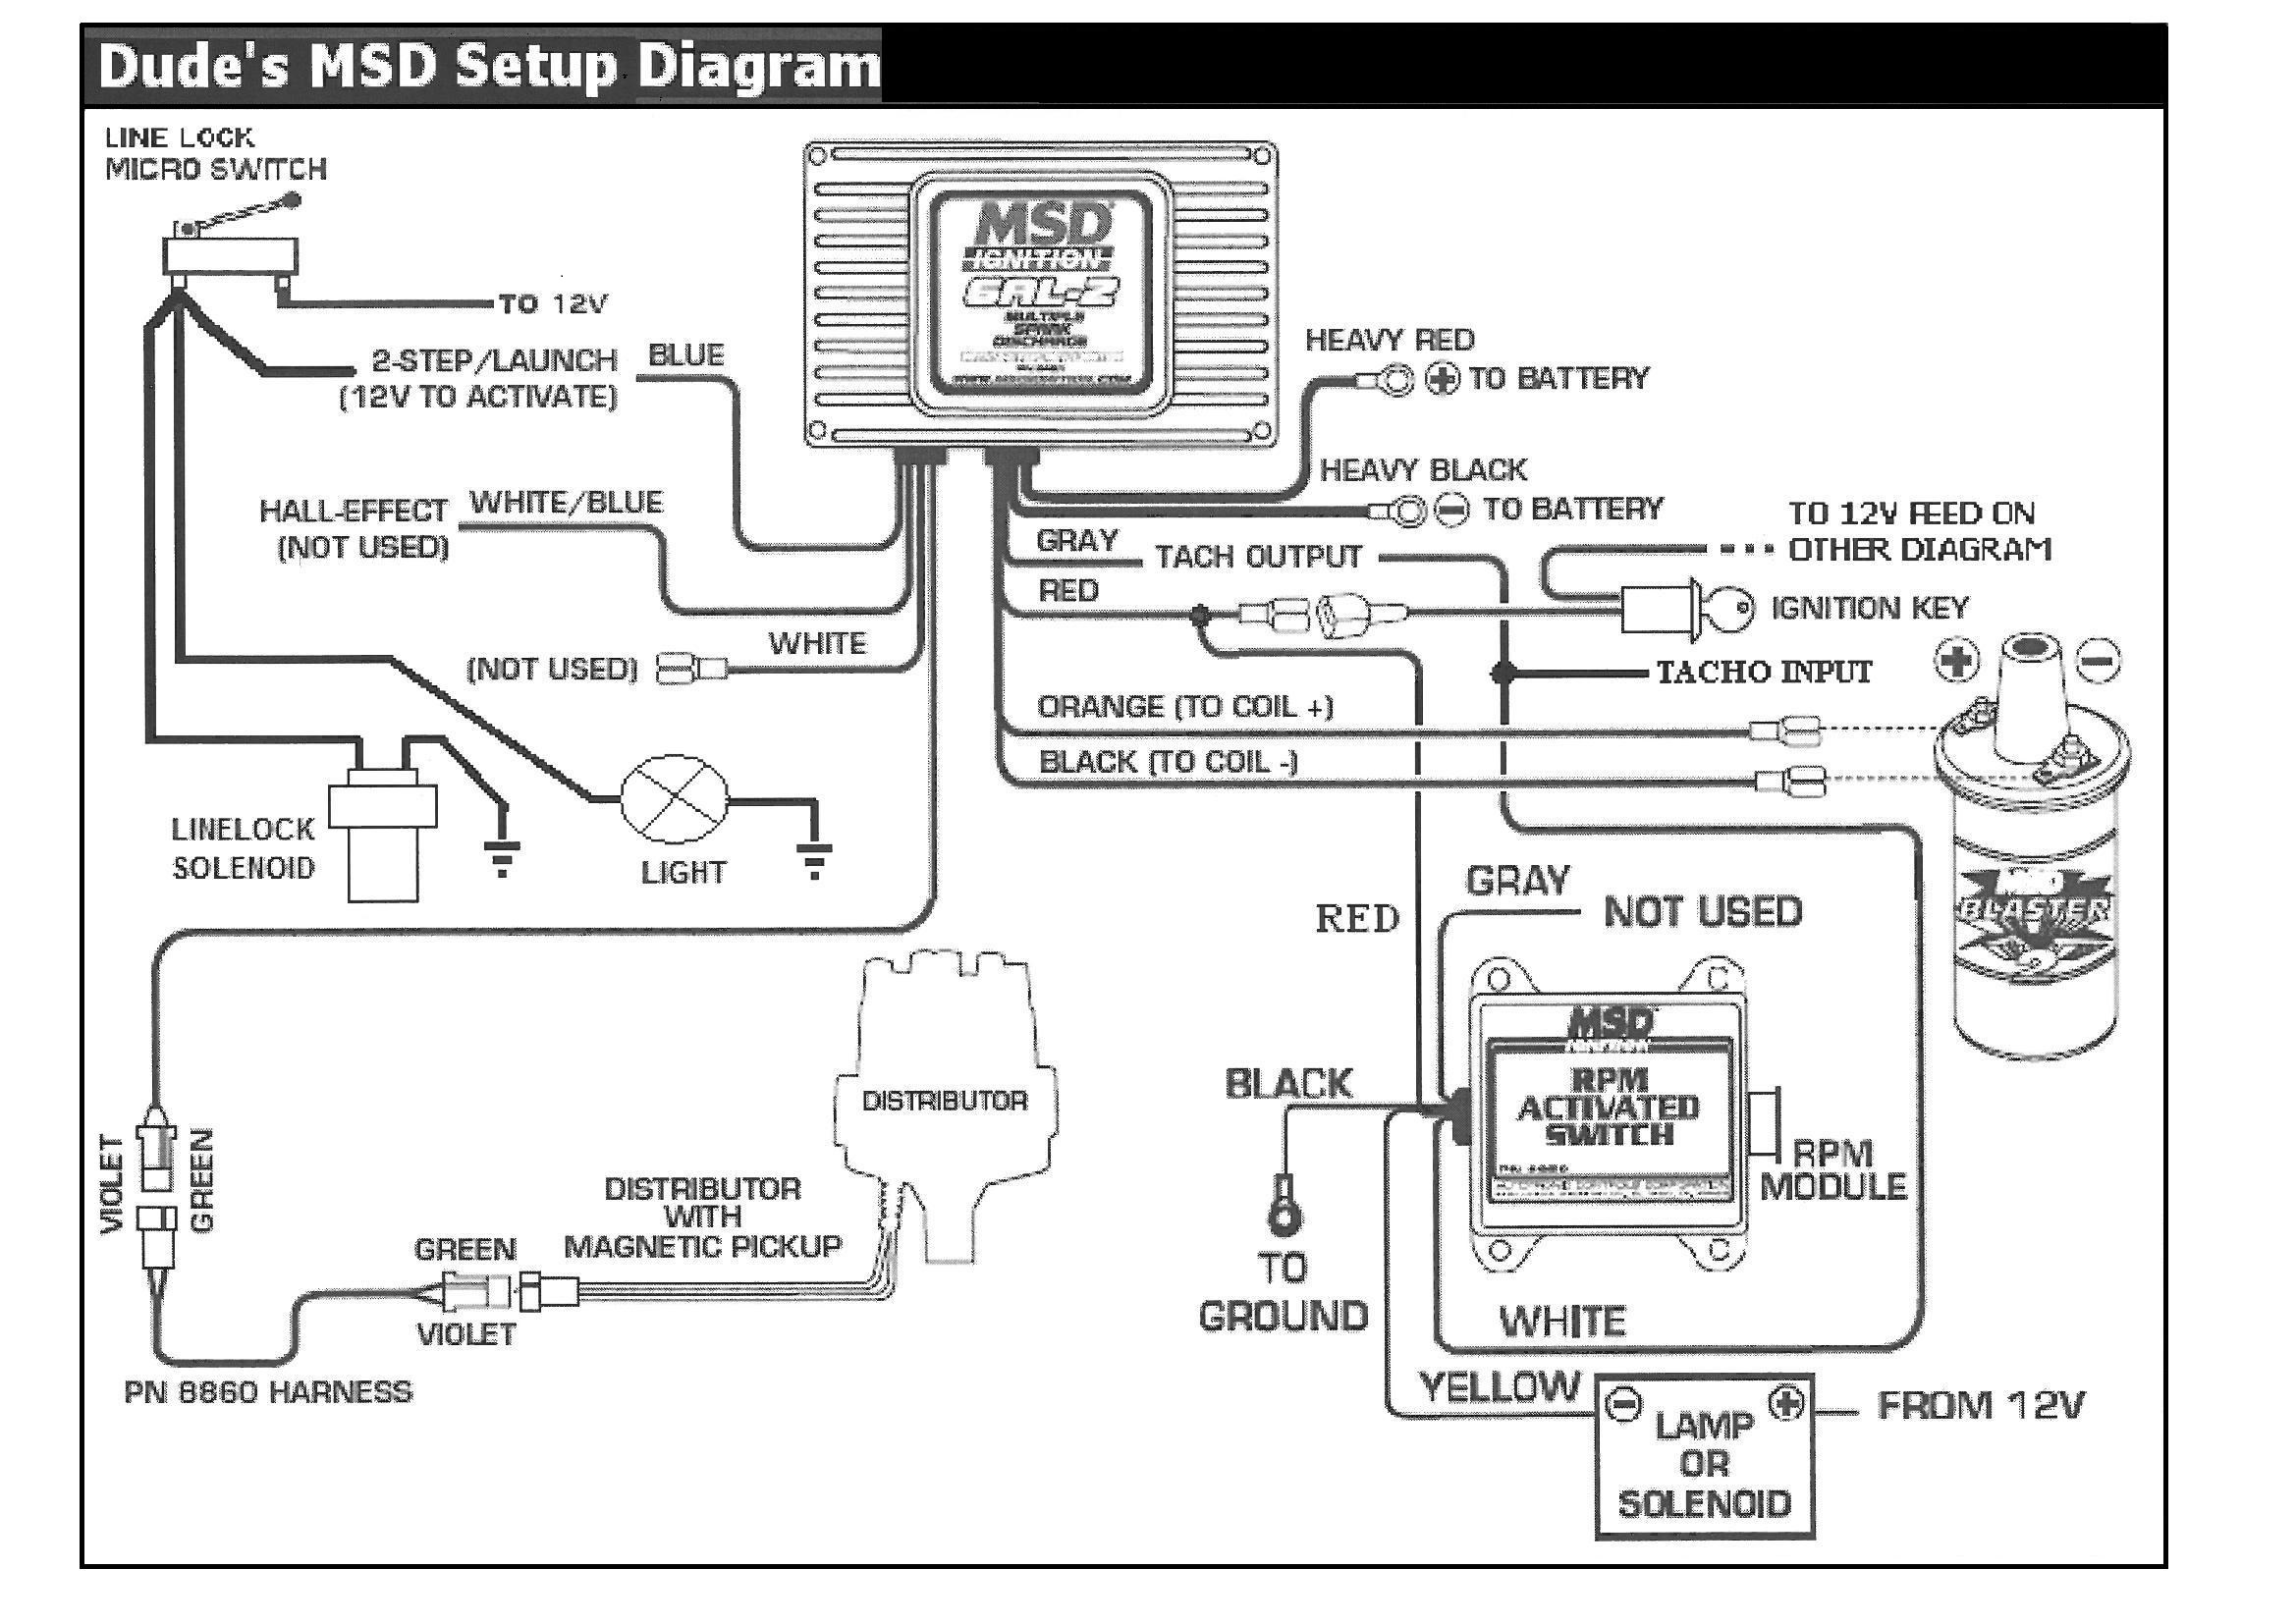 american diagram access wiring dke26 diagram components electrical